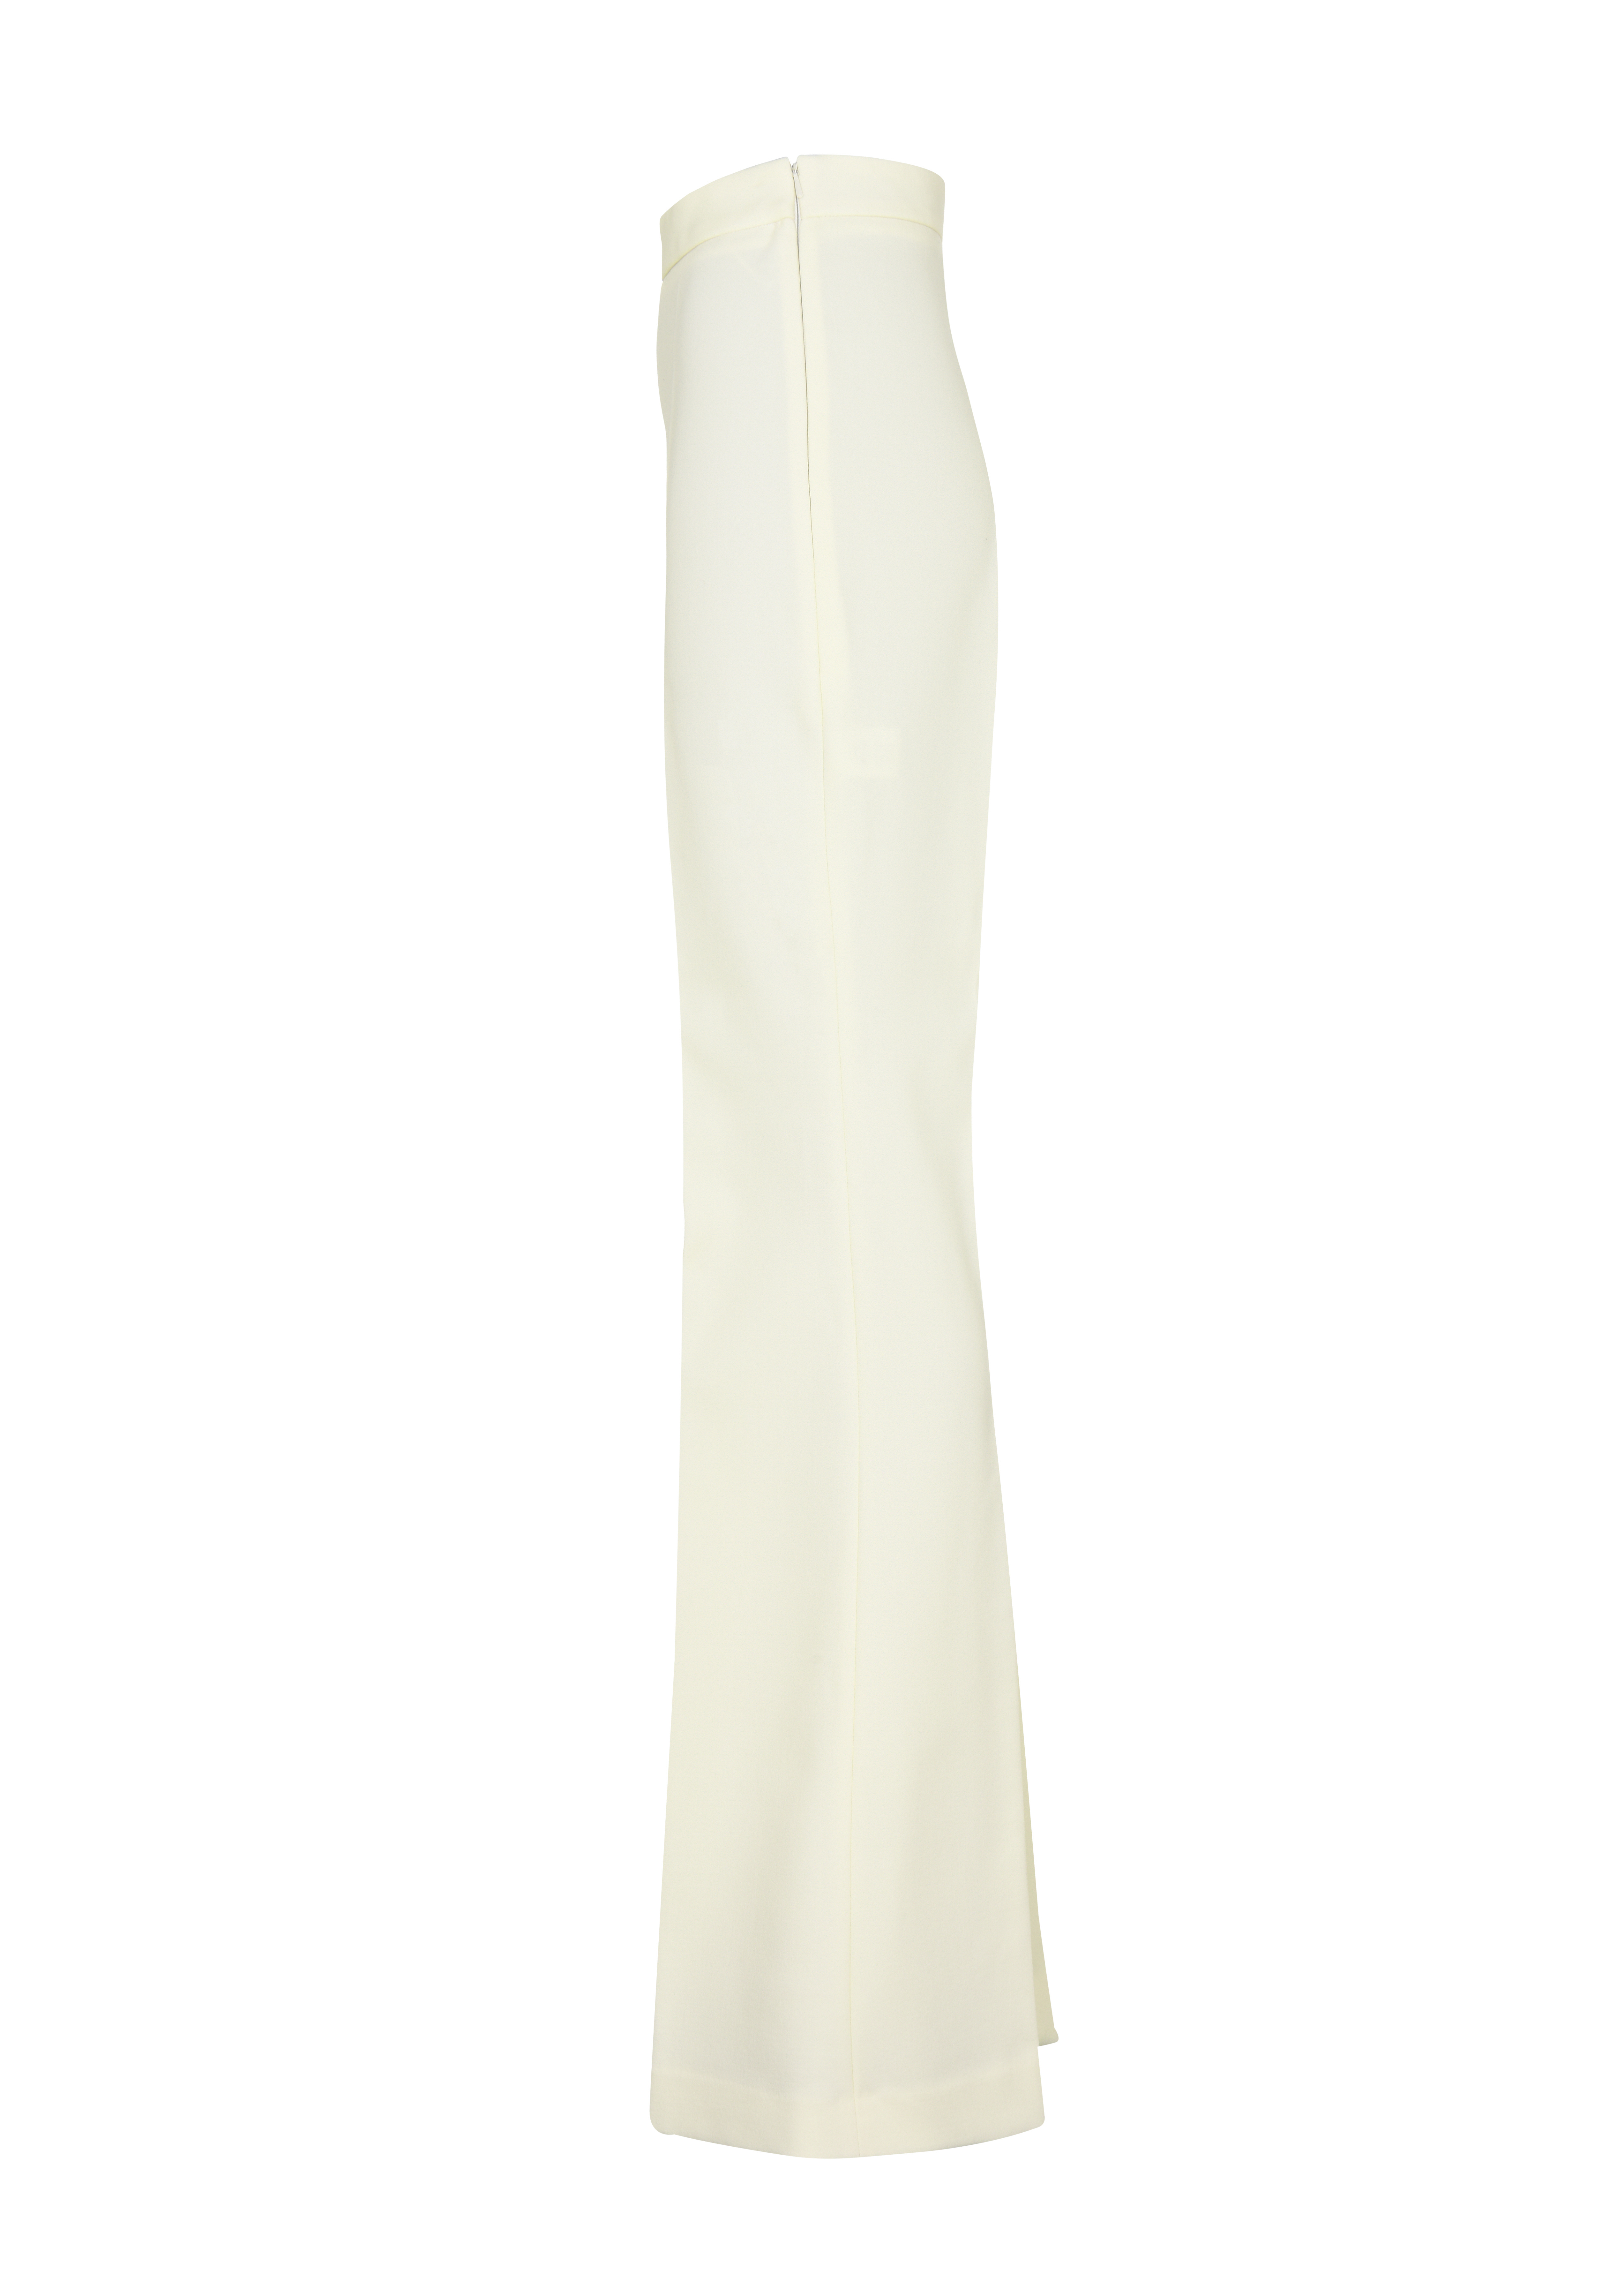 Margot Trouser - Cream by Podeny on curated-crowd.com